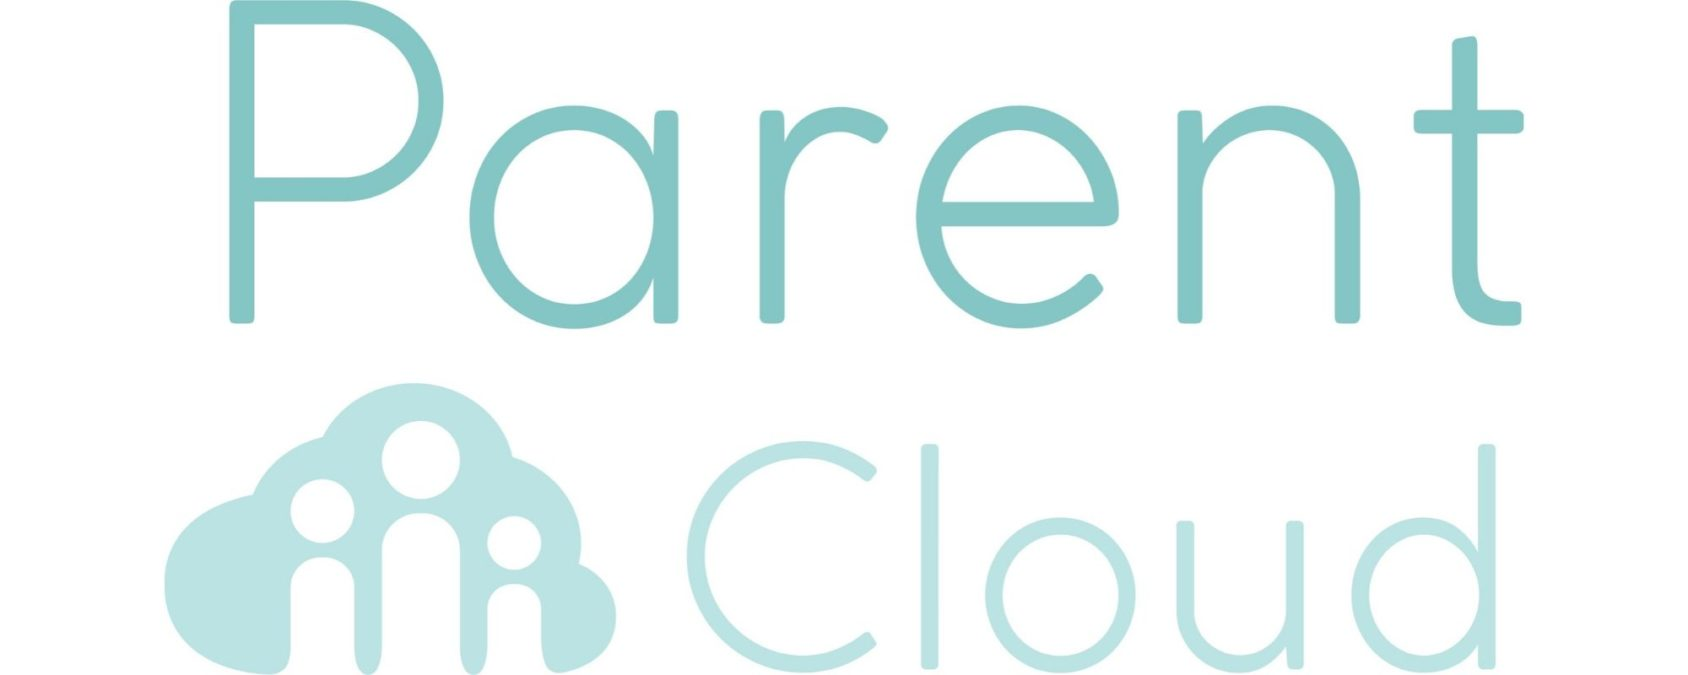 We're over the moon with Parent Cloud's new website